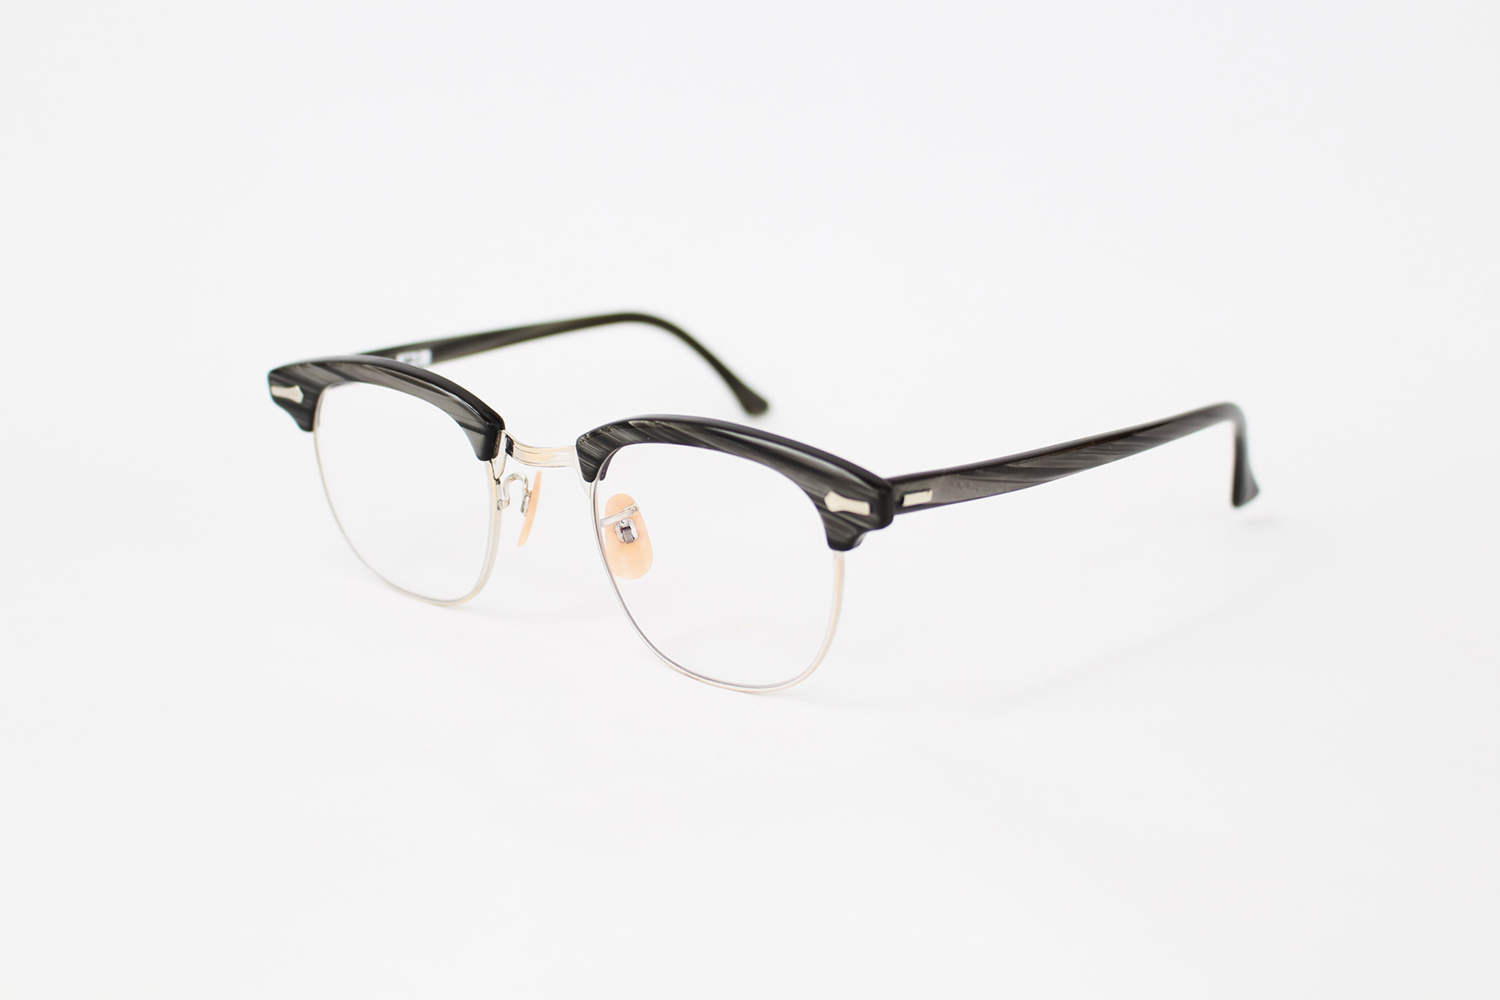 TS_Shuron_Optical_Company_Combination_1_10-12K_Gold_Filled_with_Cellulose_Acetate_2